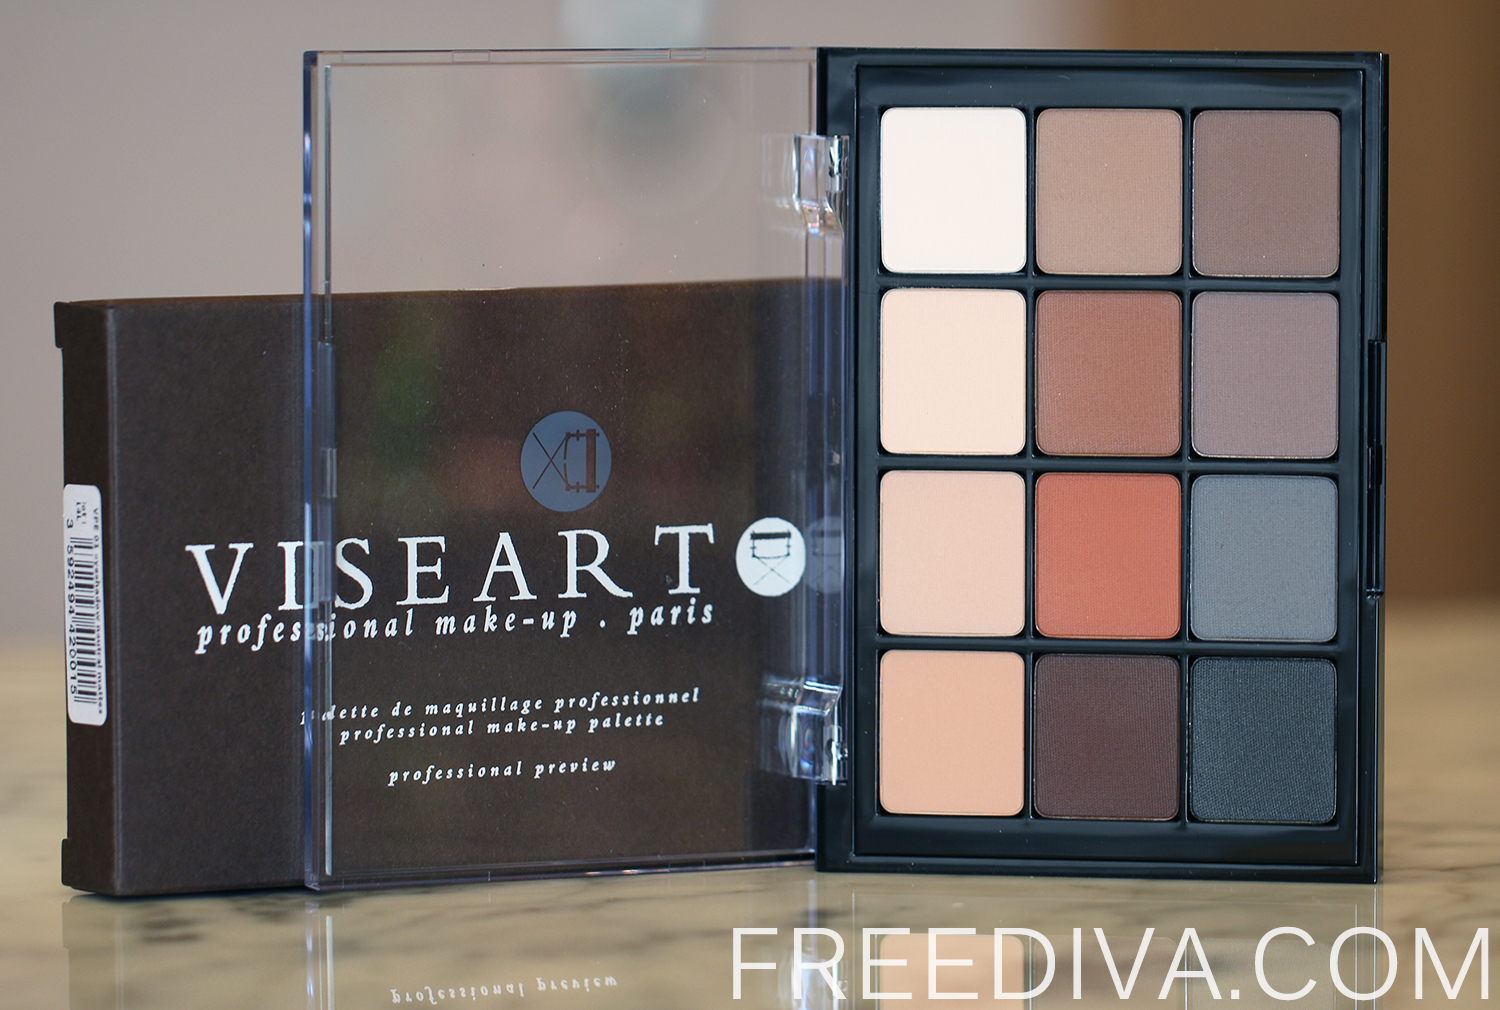 Viseart Eyeshadow Palette 01 Neutral Matte